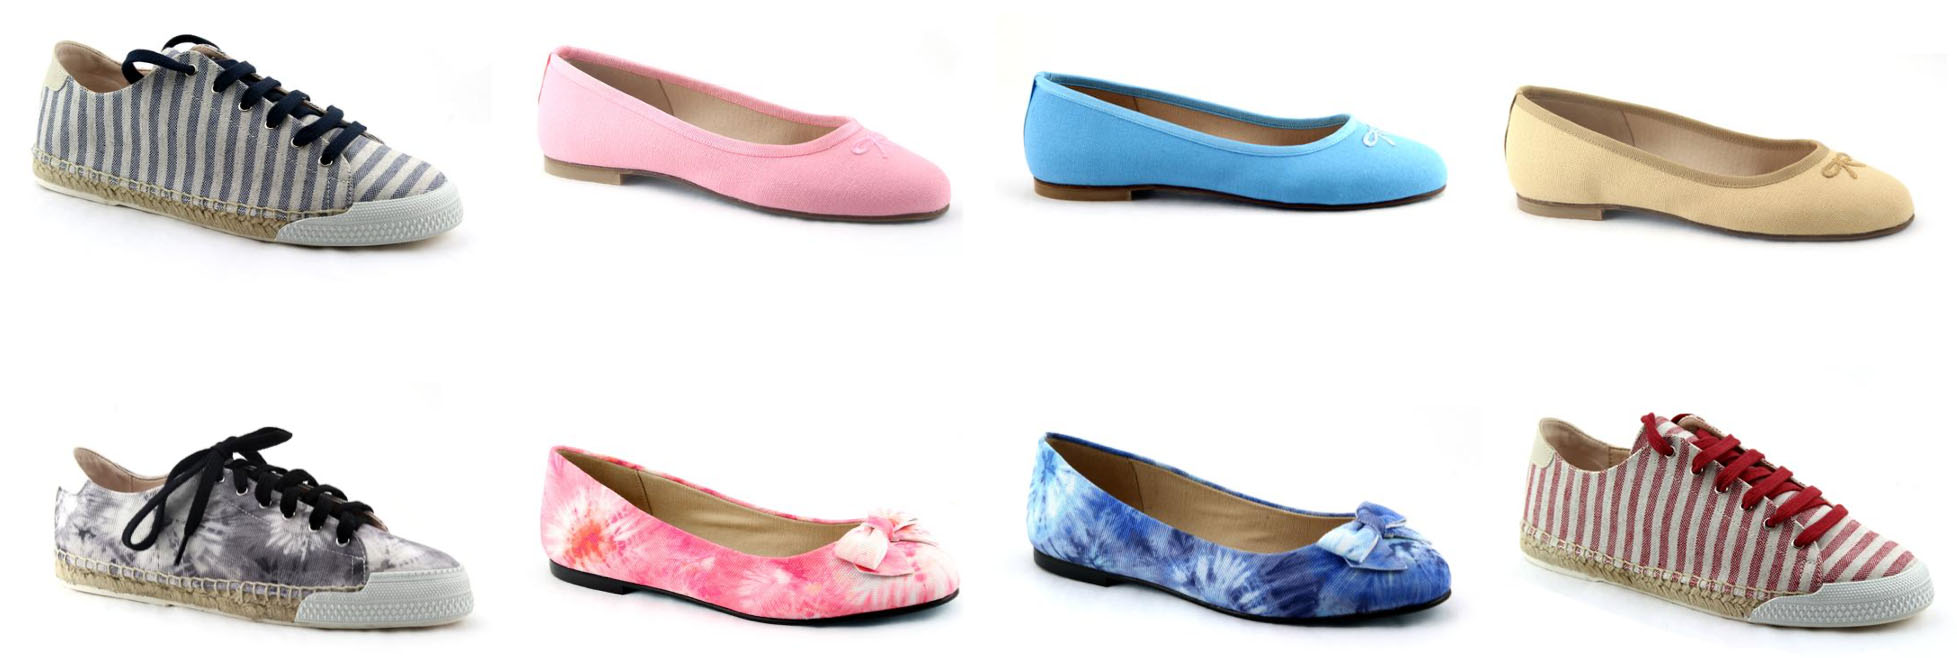 Nicky Hilton launches a collection of sustainable shoes with French Sole